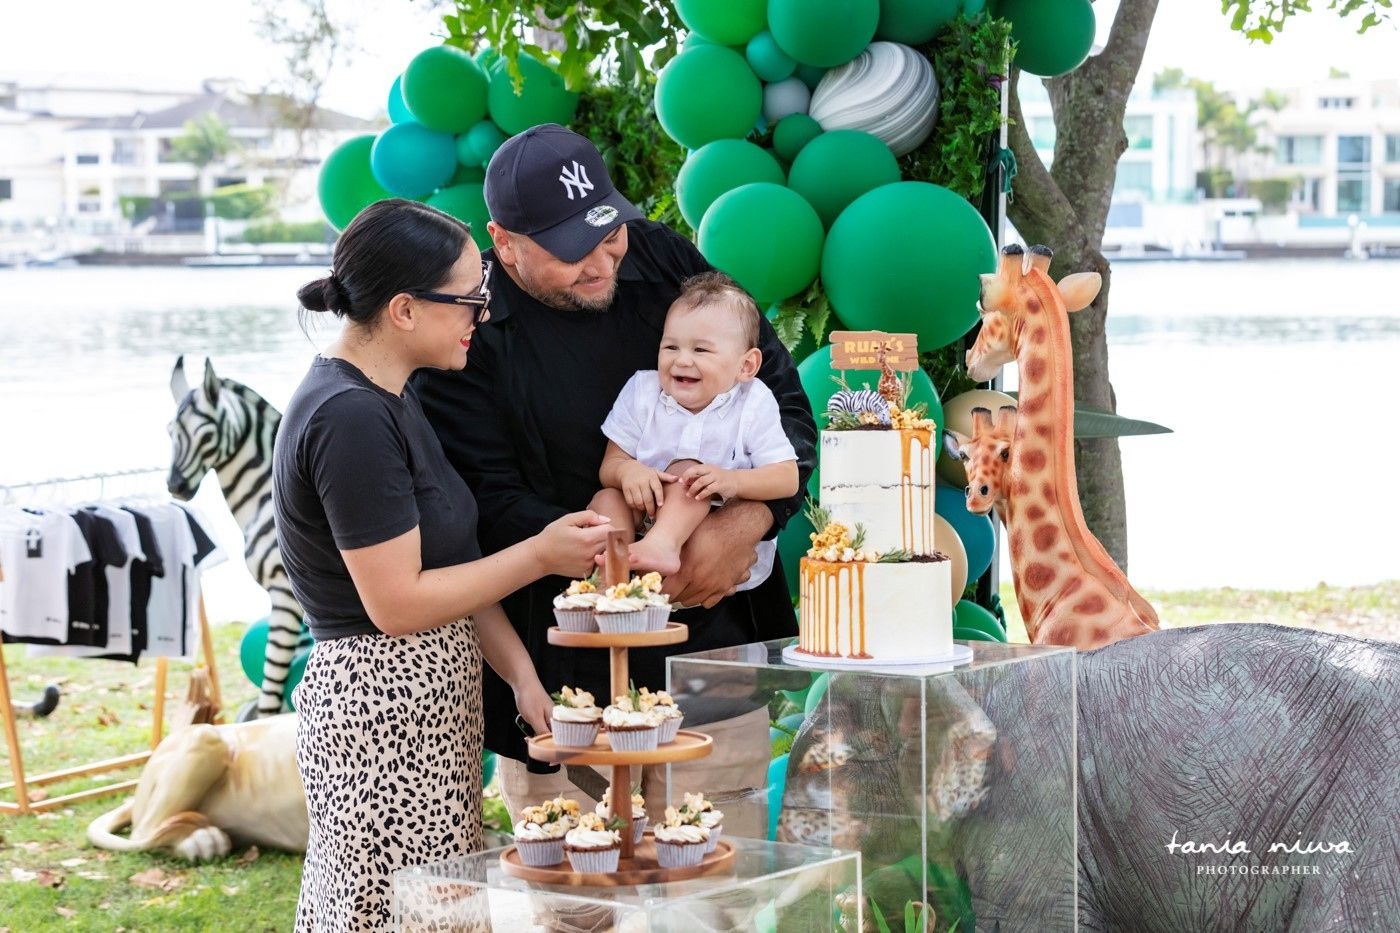 Mum, Dad and little Rumi 💚 . . . . . Rumi's 1st Birthday @whyjustcozza Styling, co-ordination, picninc and props @nextevent.com.au Jungle animals @honeytub_event_hire Balloons @lovenwishesstyledevents Signage @veryflamingo.com.au Photography @jaznaandco #goldcoast #gc #brisbane #eventstyling #love #florals #party #events #eventplanner #eventplanning #instagood #corporateevents #event #styling #eventdesign #corporate #one #1stbirthday #birthday #party #kidsofthegoldcoast